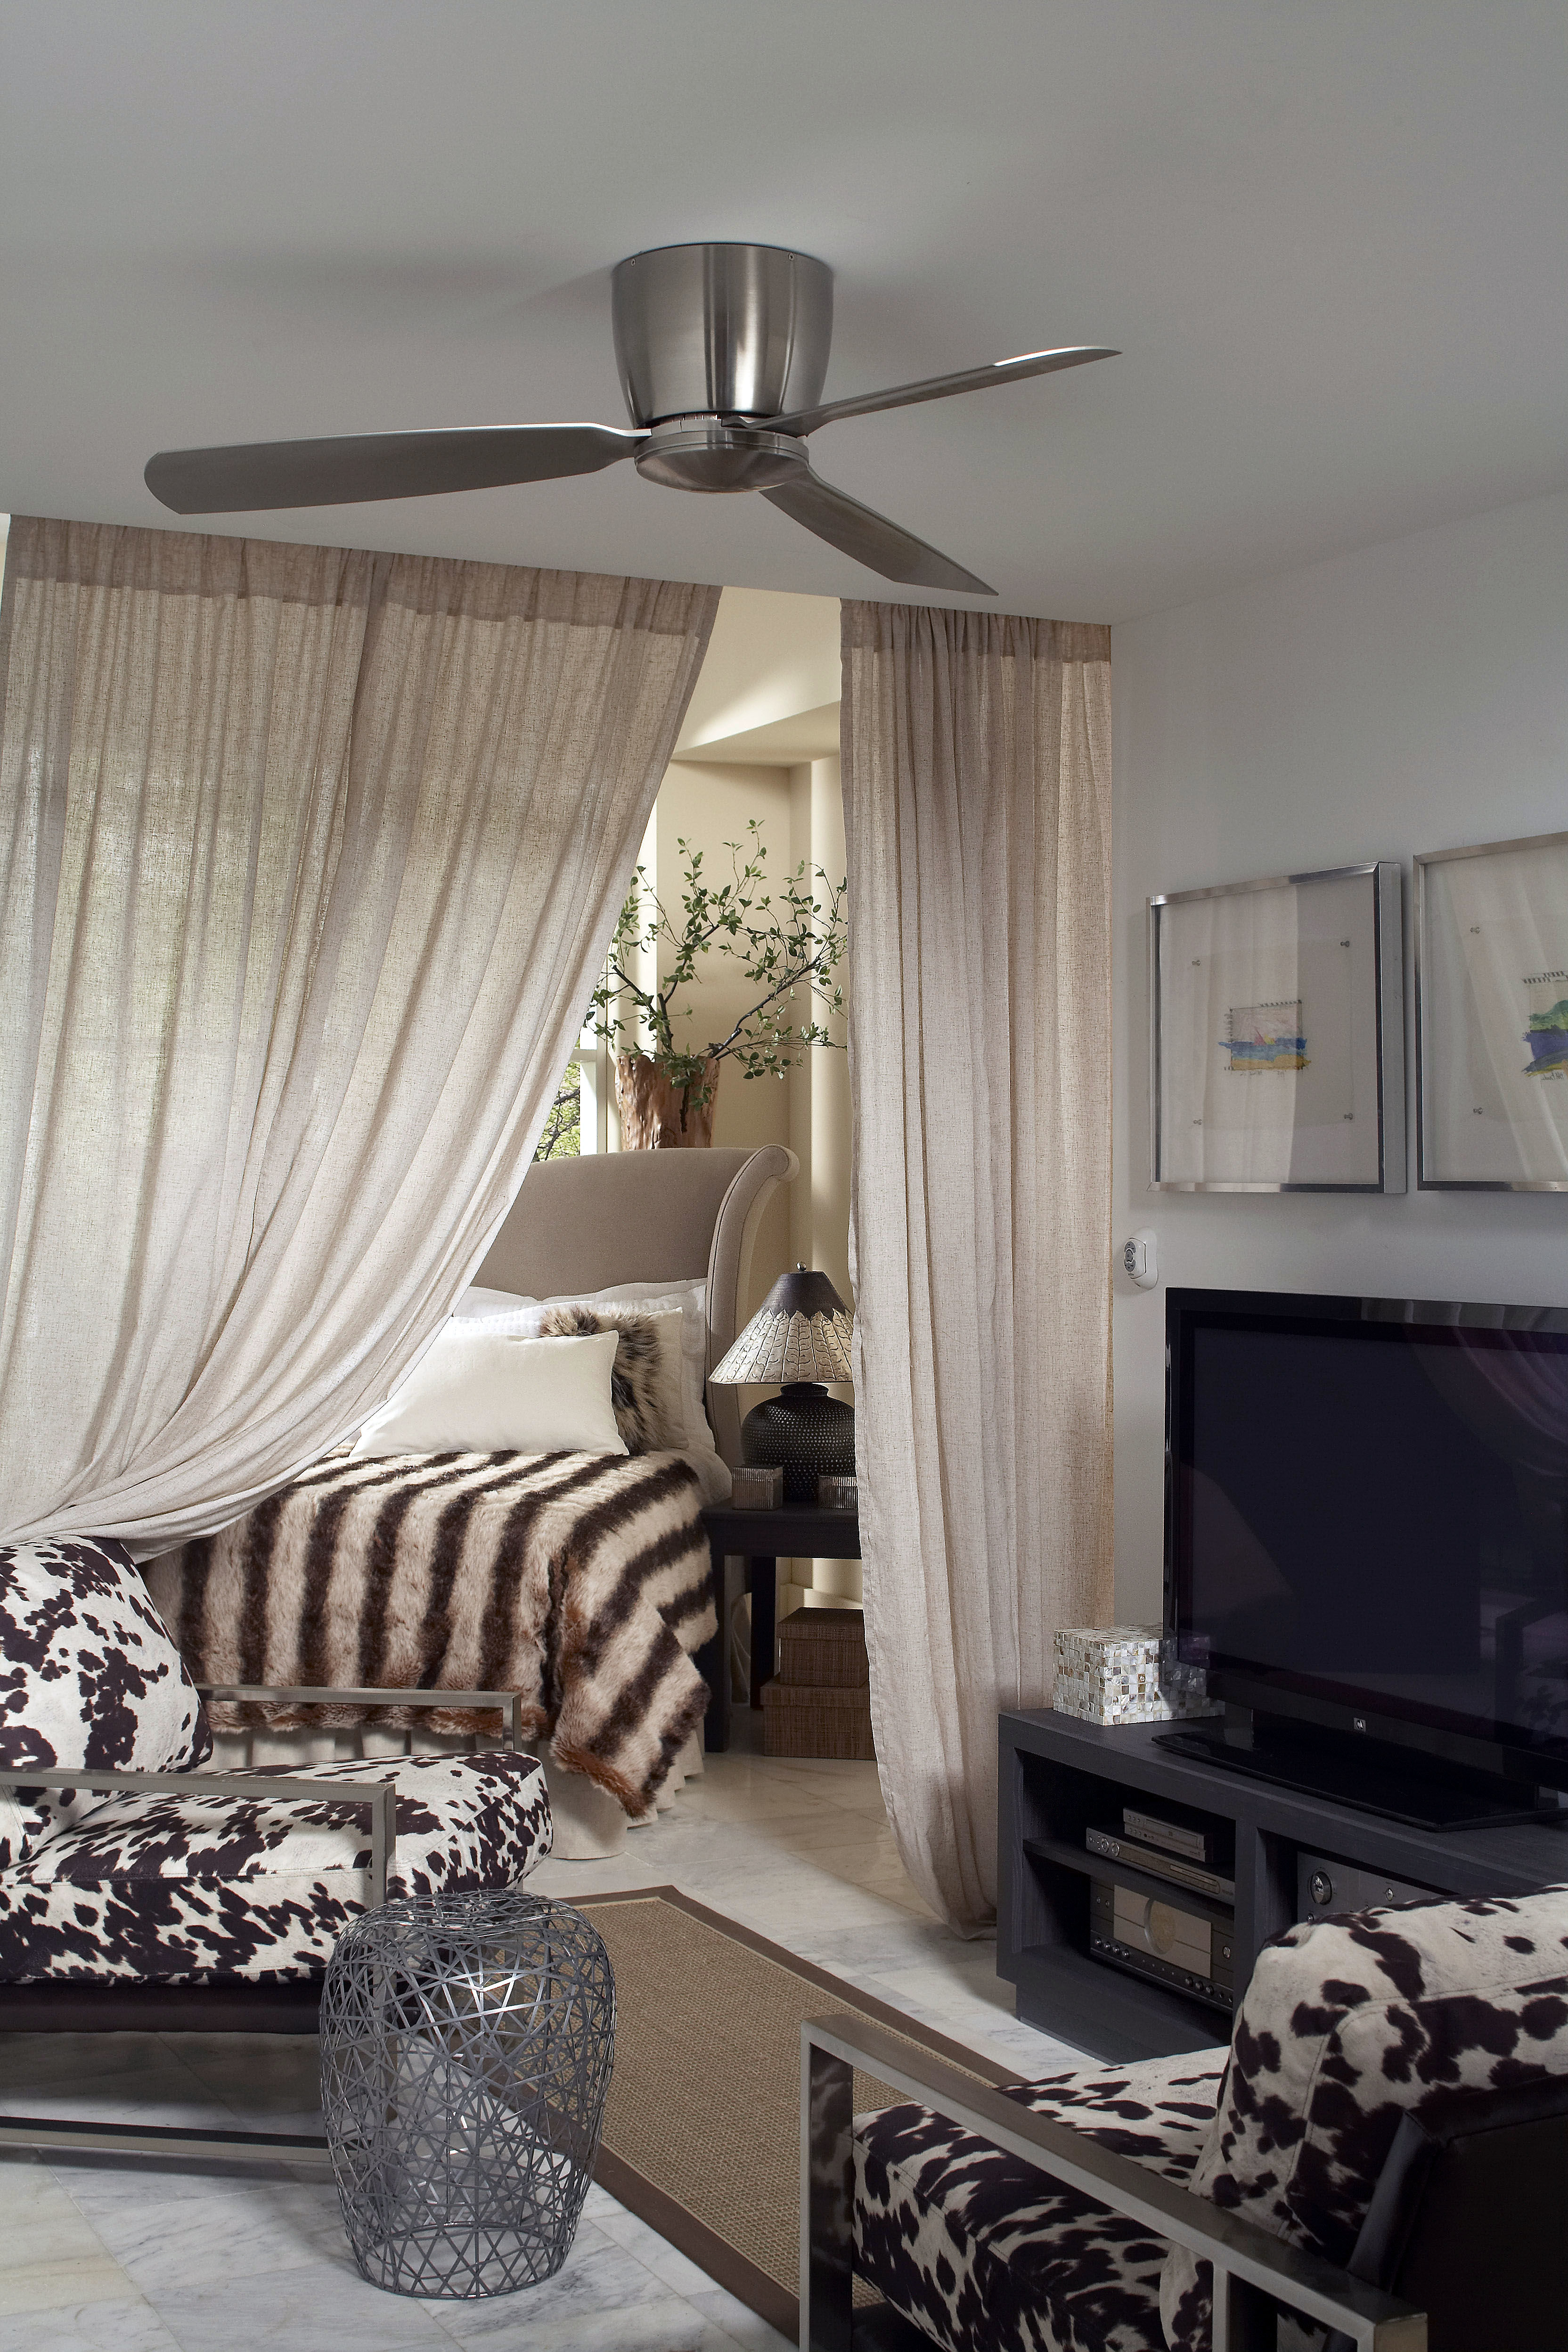 Preferred Fanimation Fps7955 Throughout Embrace 3 Blade Ceiling Fans (View 16 of 20)